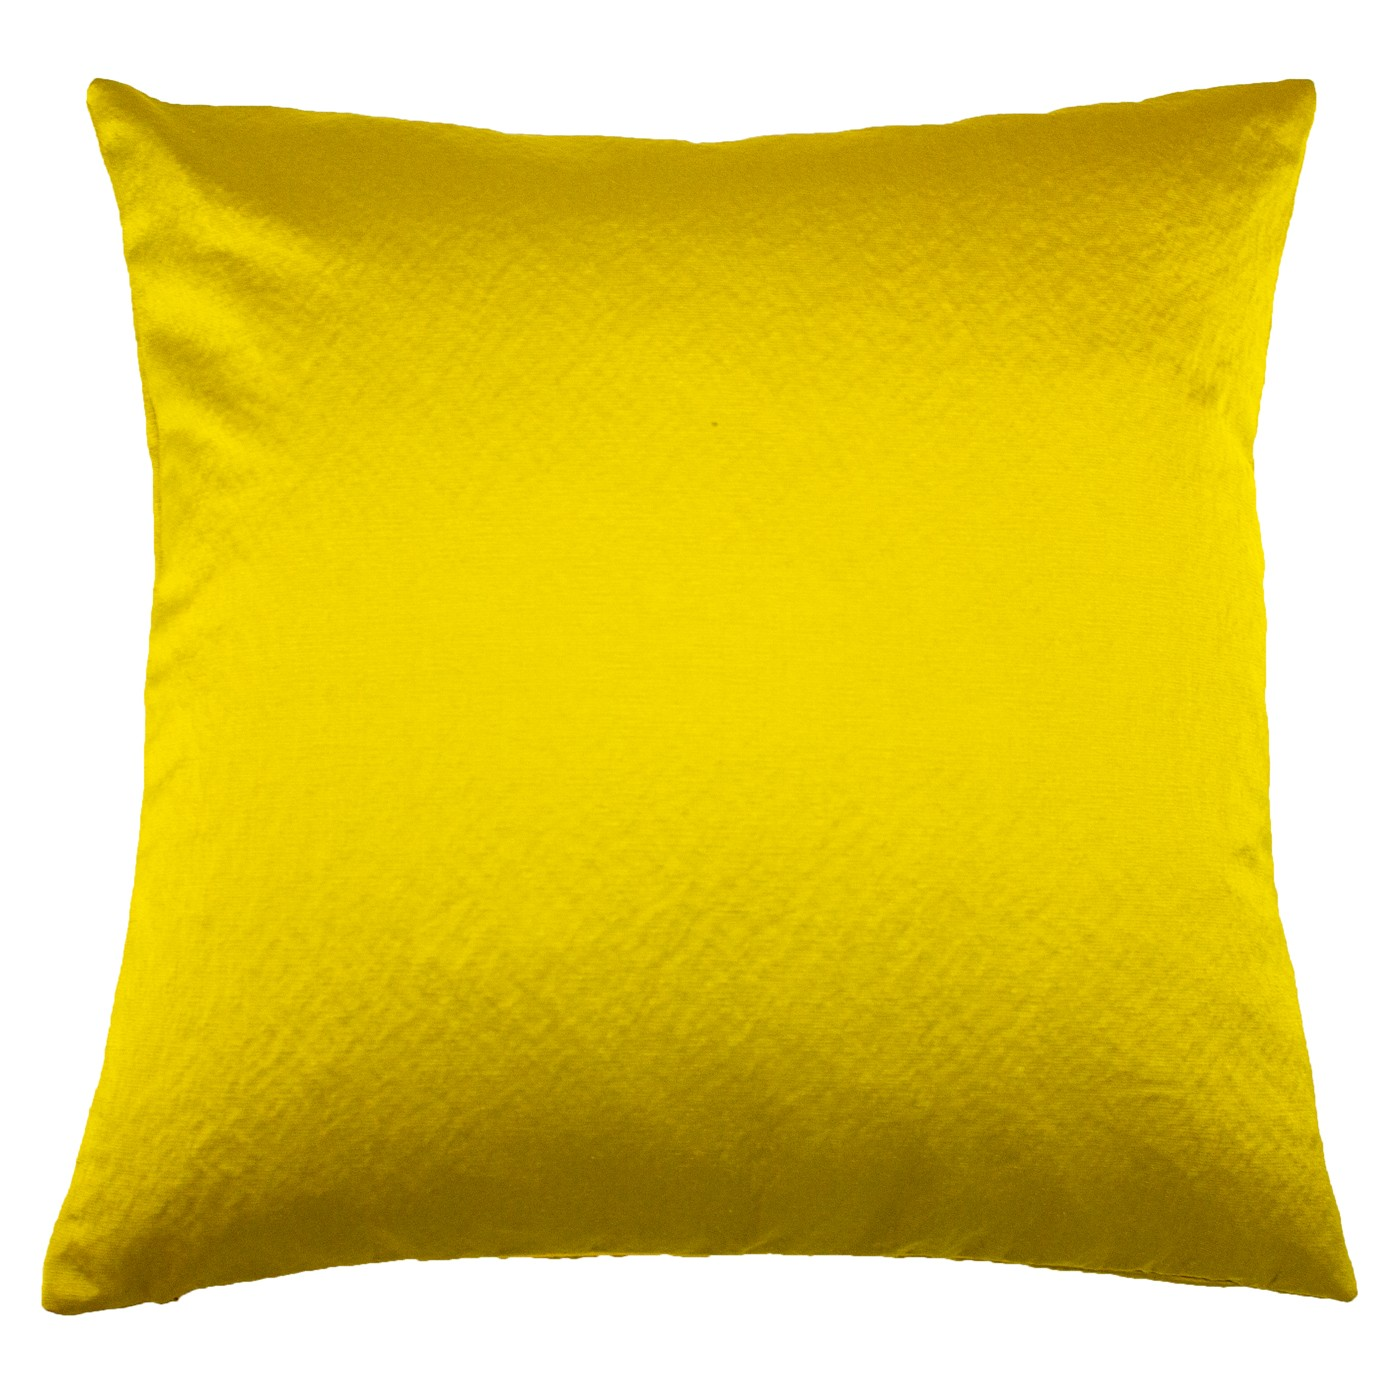 The Home Furnishings Company Palermo Limon Yellow Cushion Cushion 45x45cms